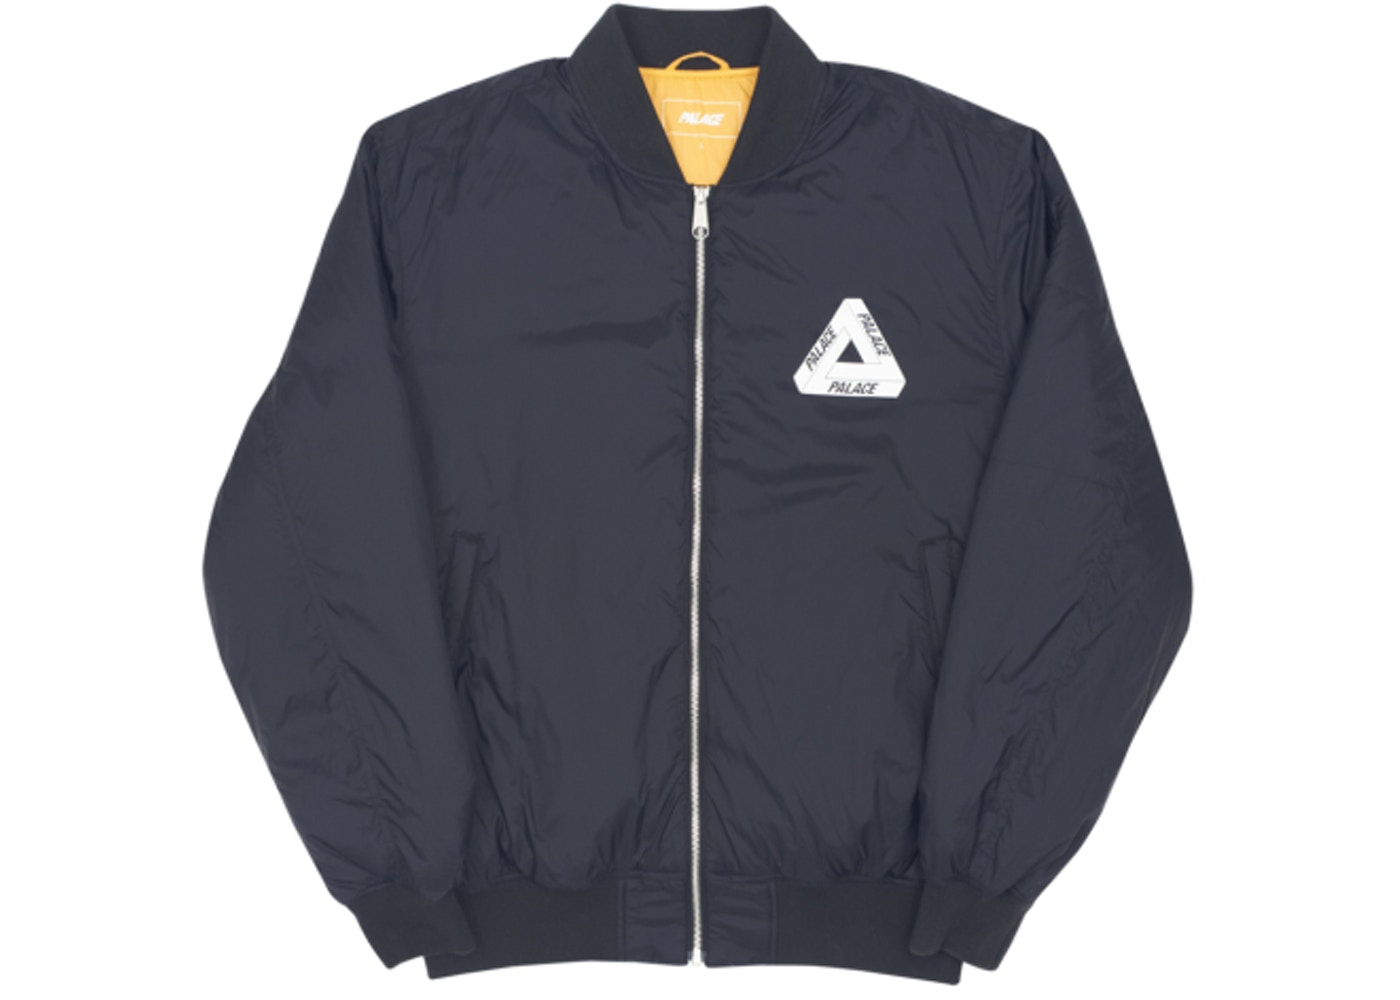 4c820f86941a Palace Thinsulate Bomber Jacket Black. Thinsulate Bomber